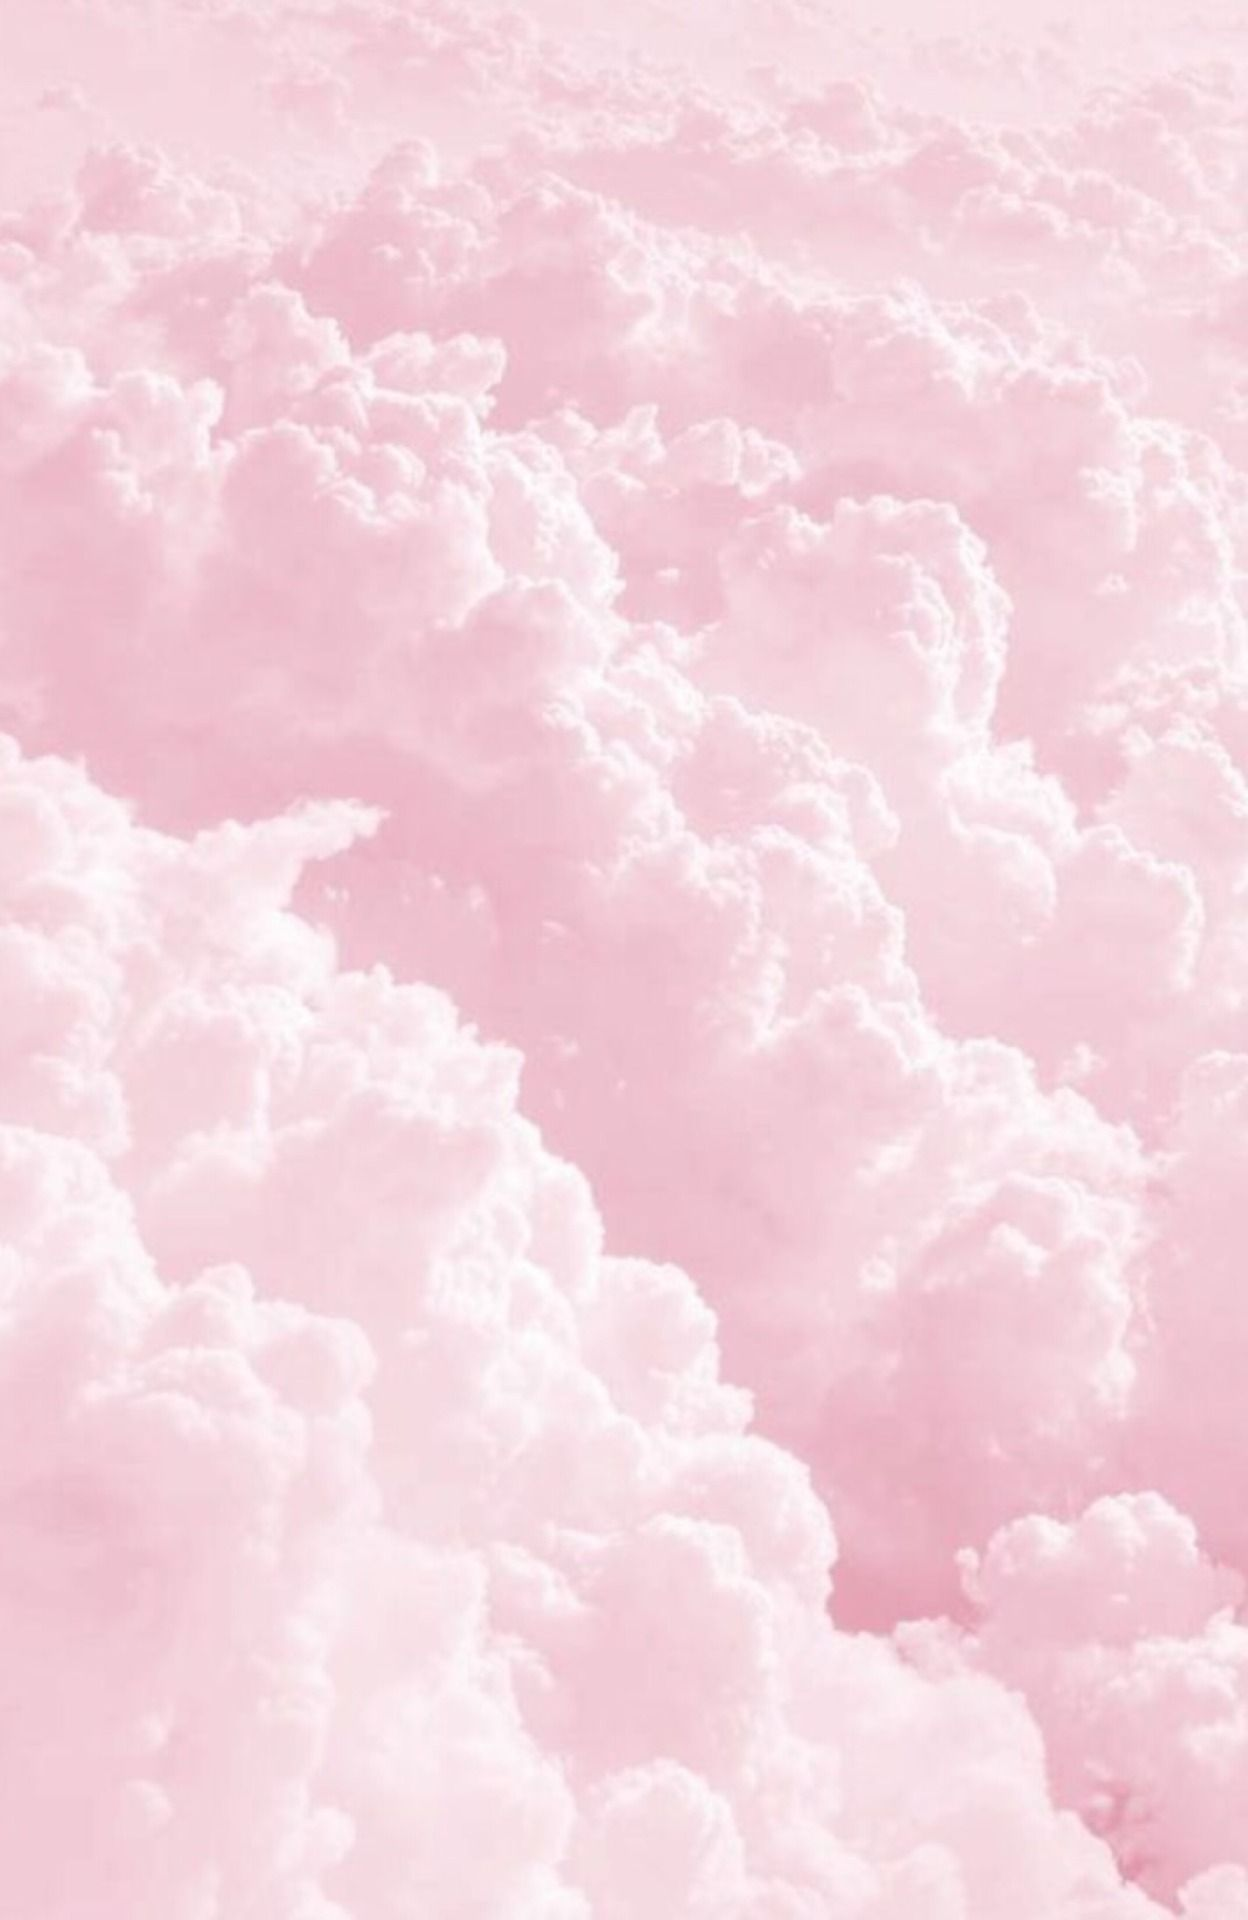 Taste The Clouds Pink Clouds Wallpaper Pastel Pink Aesthetic Pink Wallpaper Iphone